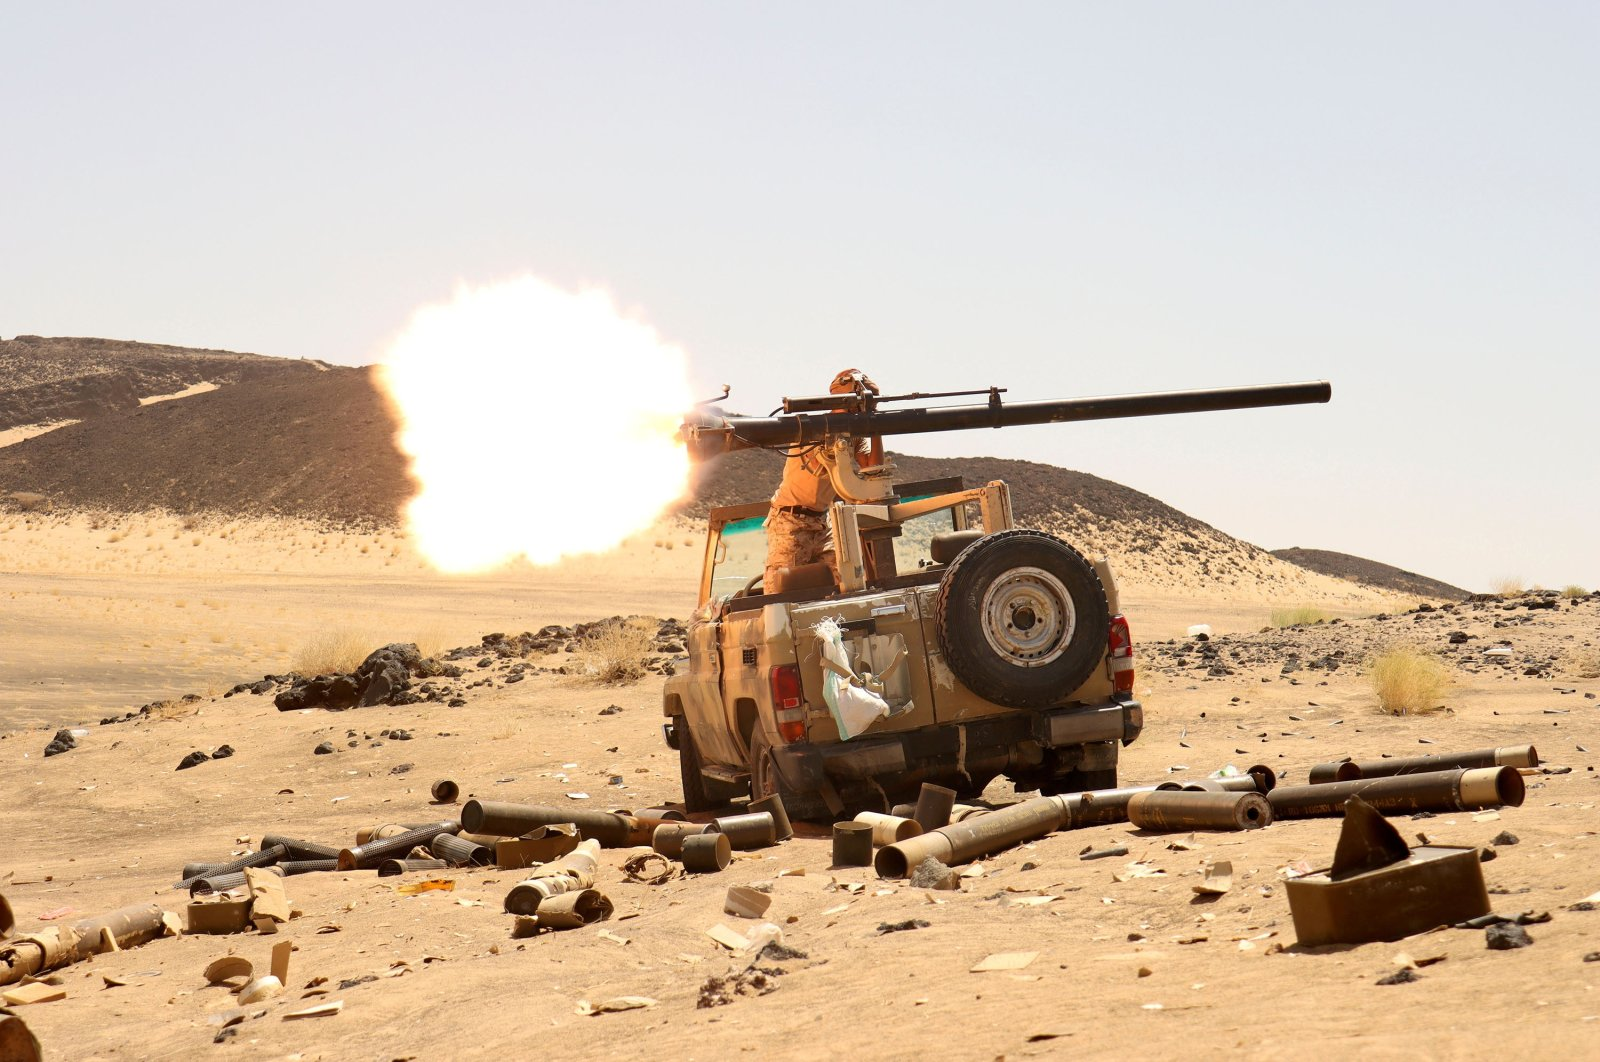 A Yemeni government fighter fires a vehicle-mounted weapon at a frontline position during fighting against Houthi fighters in Marib, Yemen, March 9, 2021. (Reuters Photo)